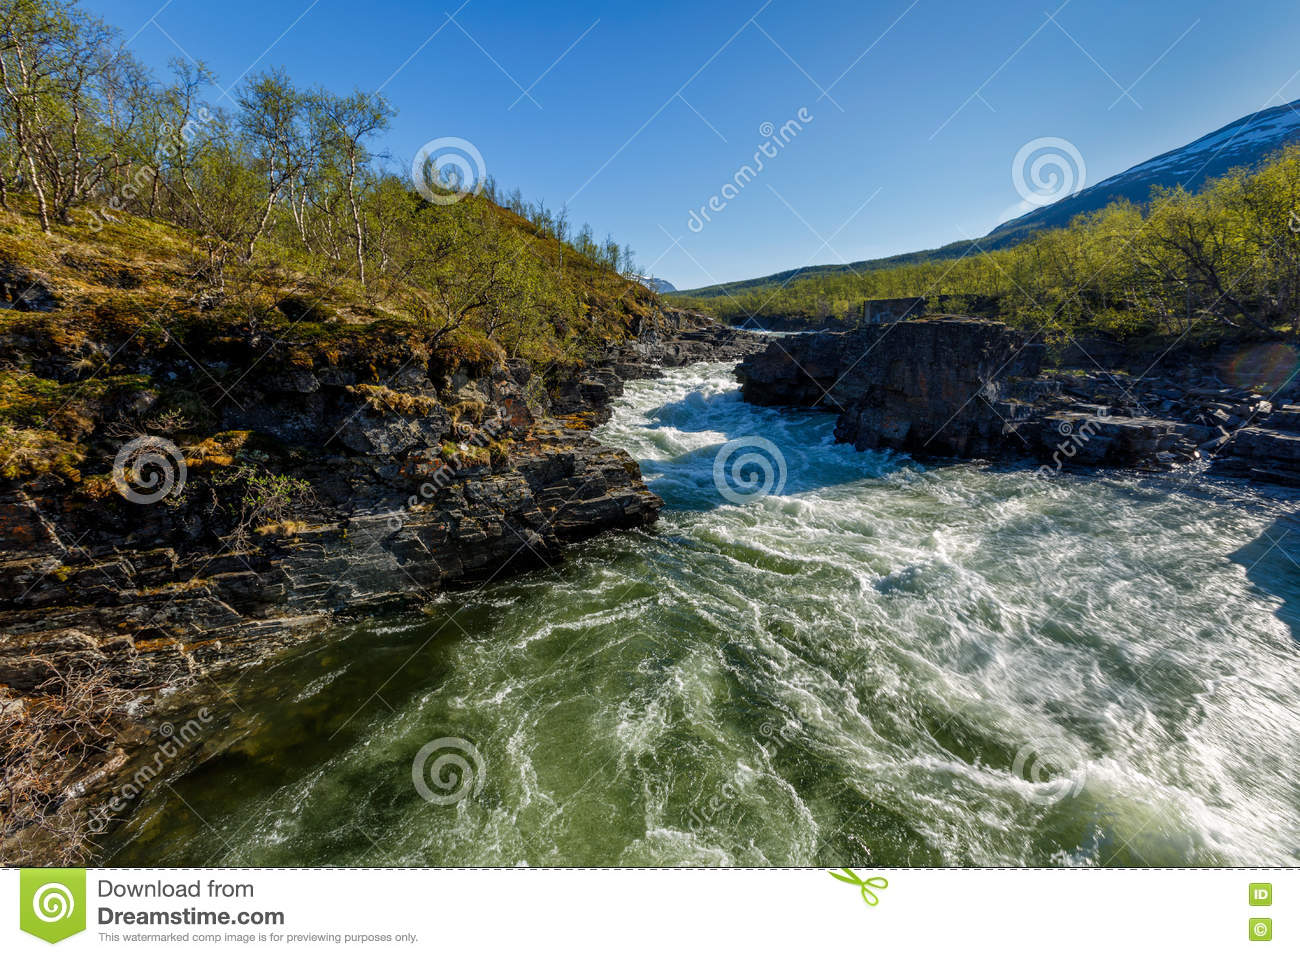 Beautiful landscape with river and canyon